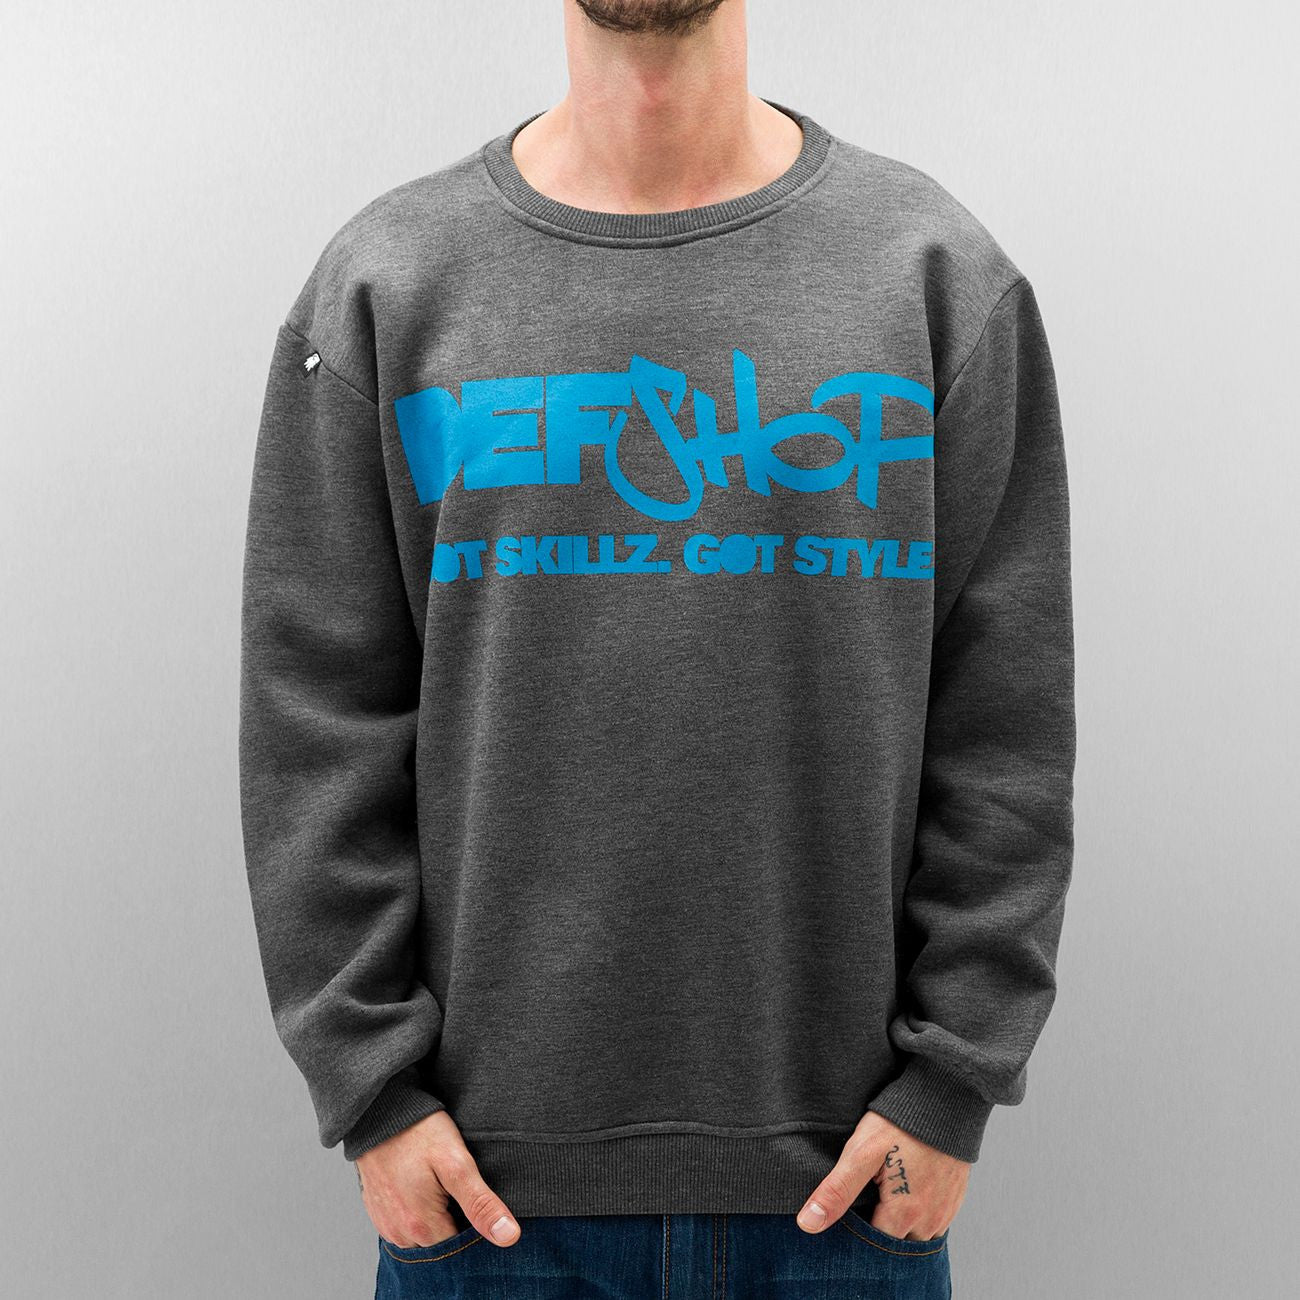 Dangerous DNGRS Got Skillz Got Style Sweatshirt Charcoal Heather/Blue Grey